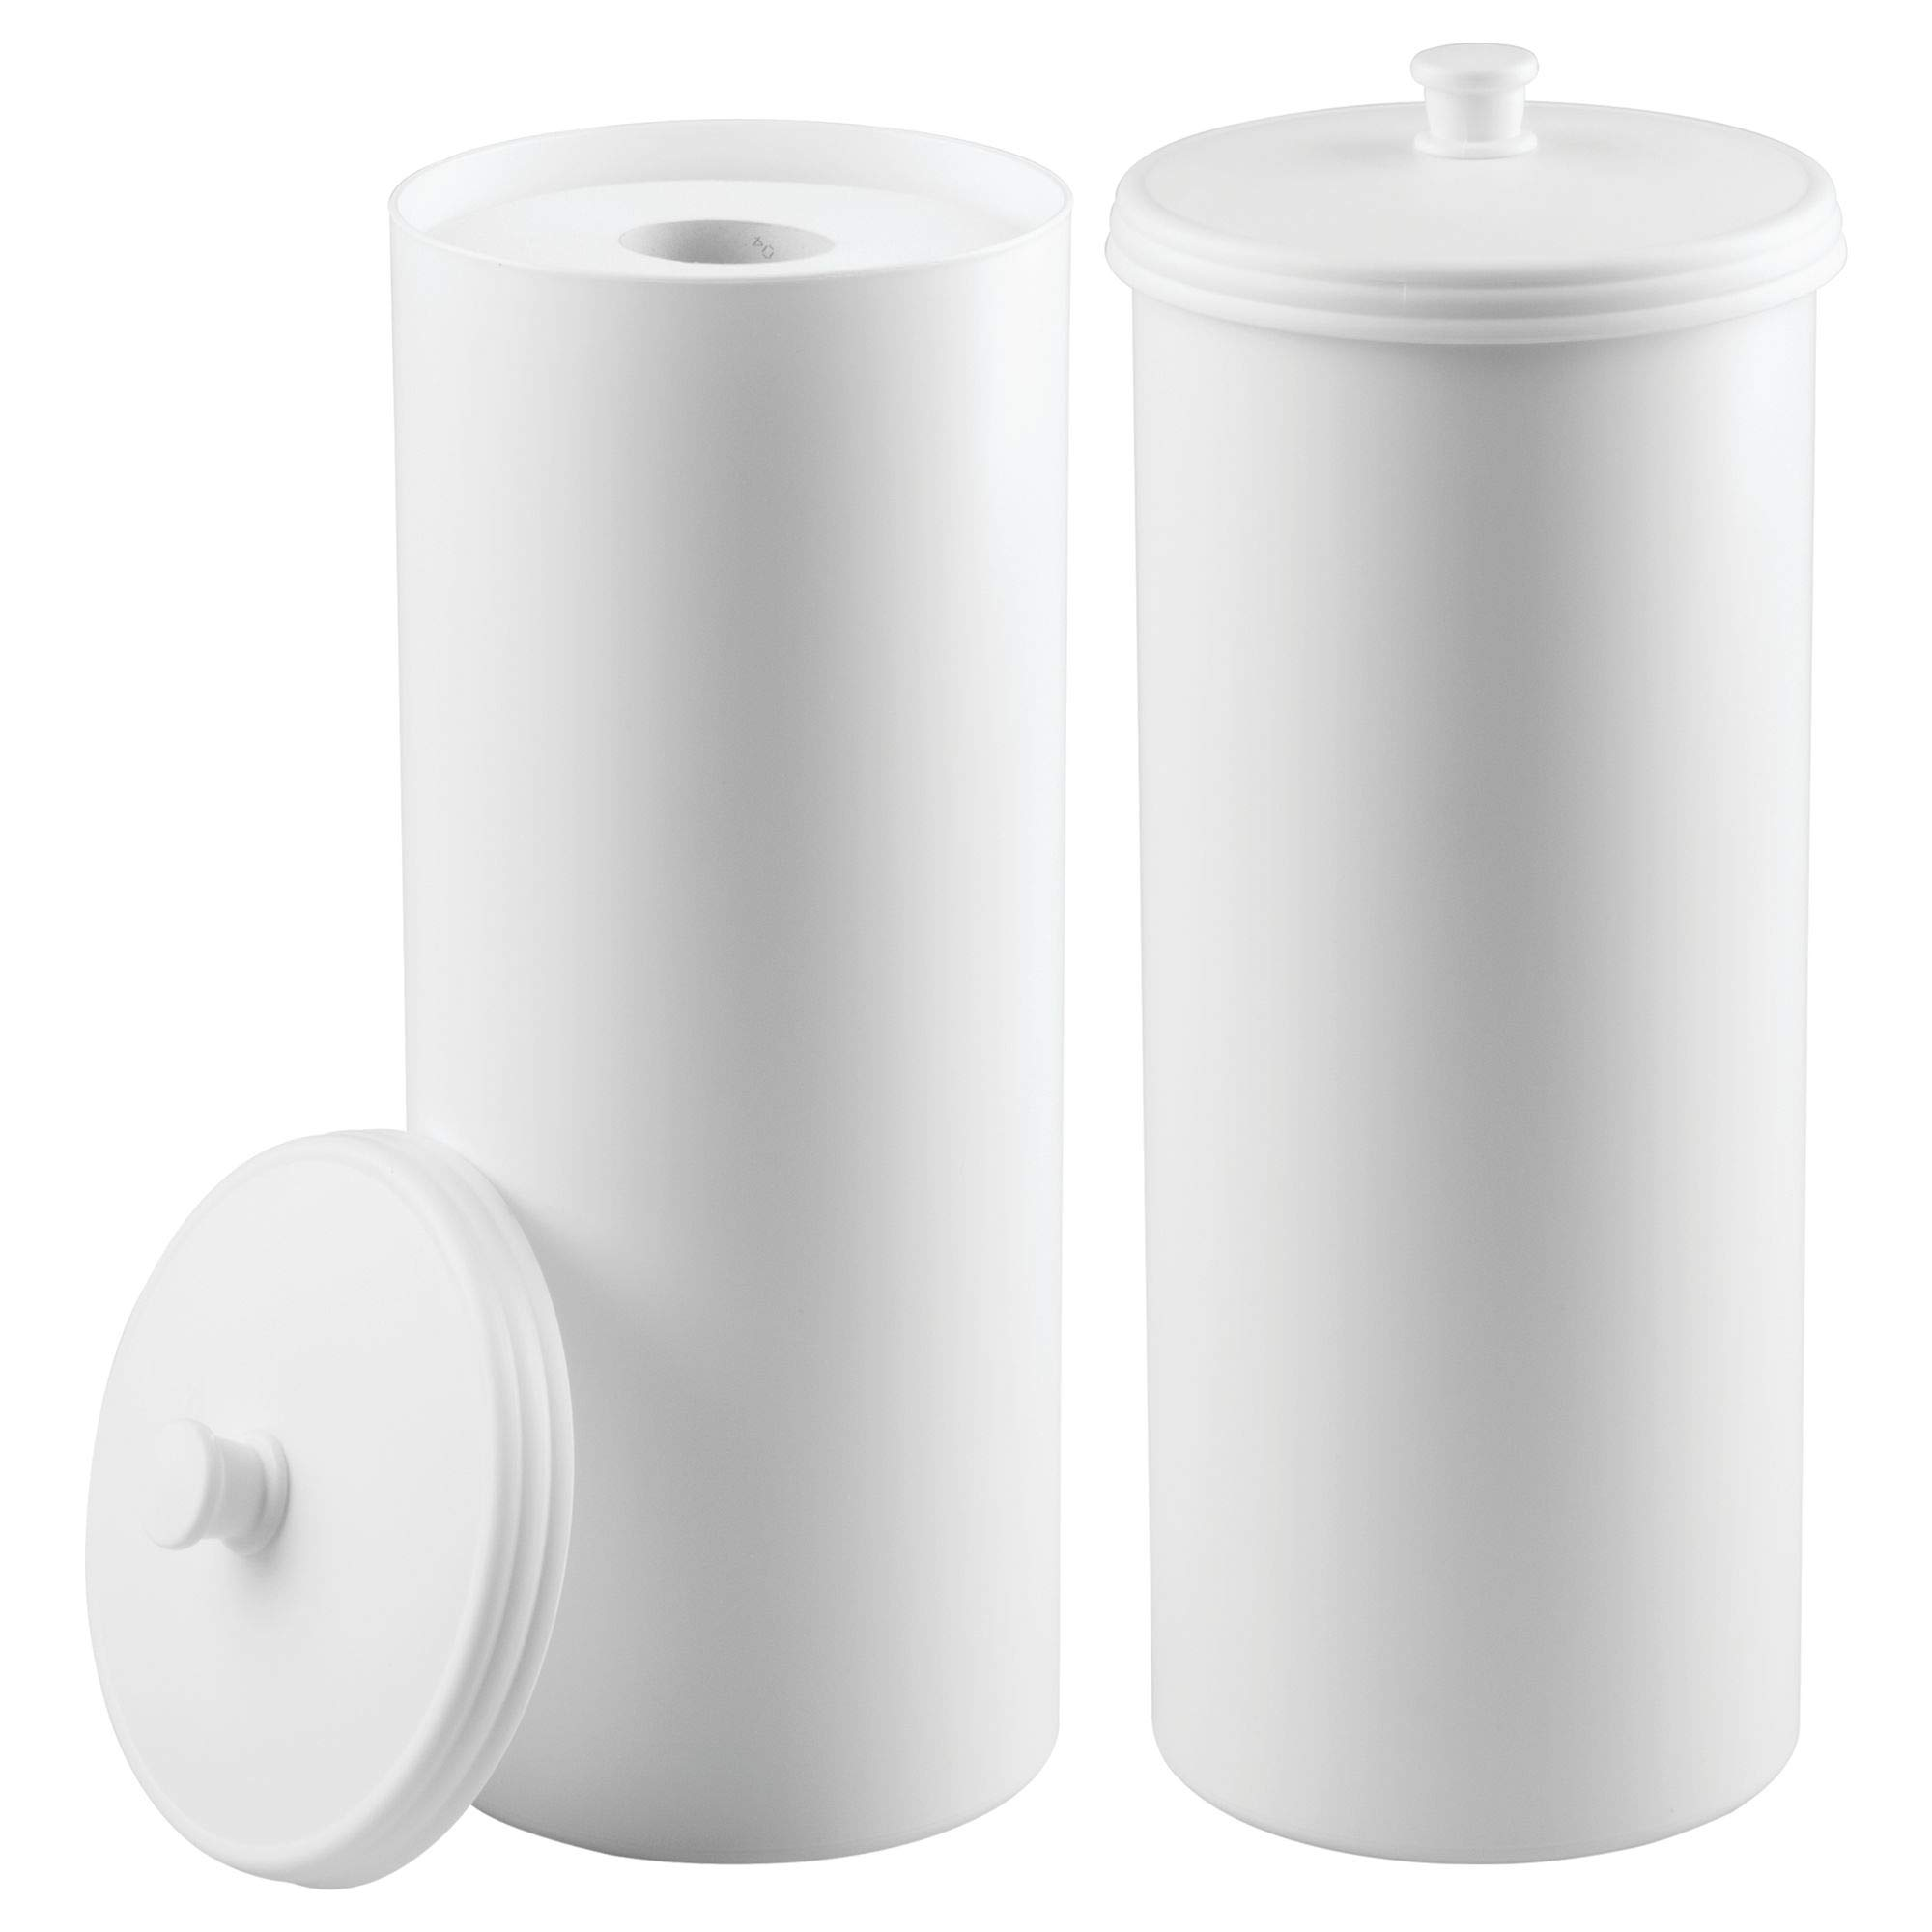 mDesign Free Standing Toilet Paper 3 Roll Holder Canister Stand with Lid for Bathroom Storage - Pack of 2, White